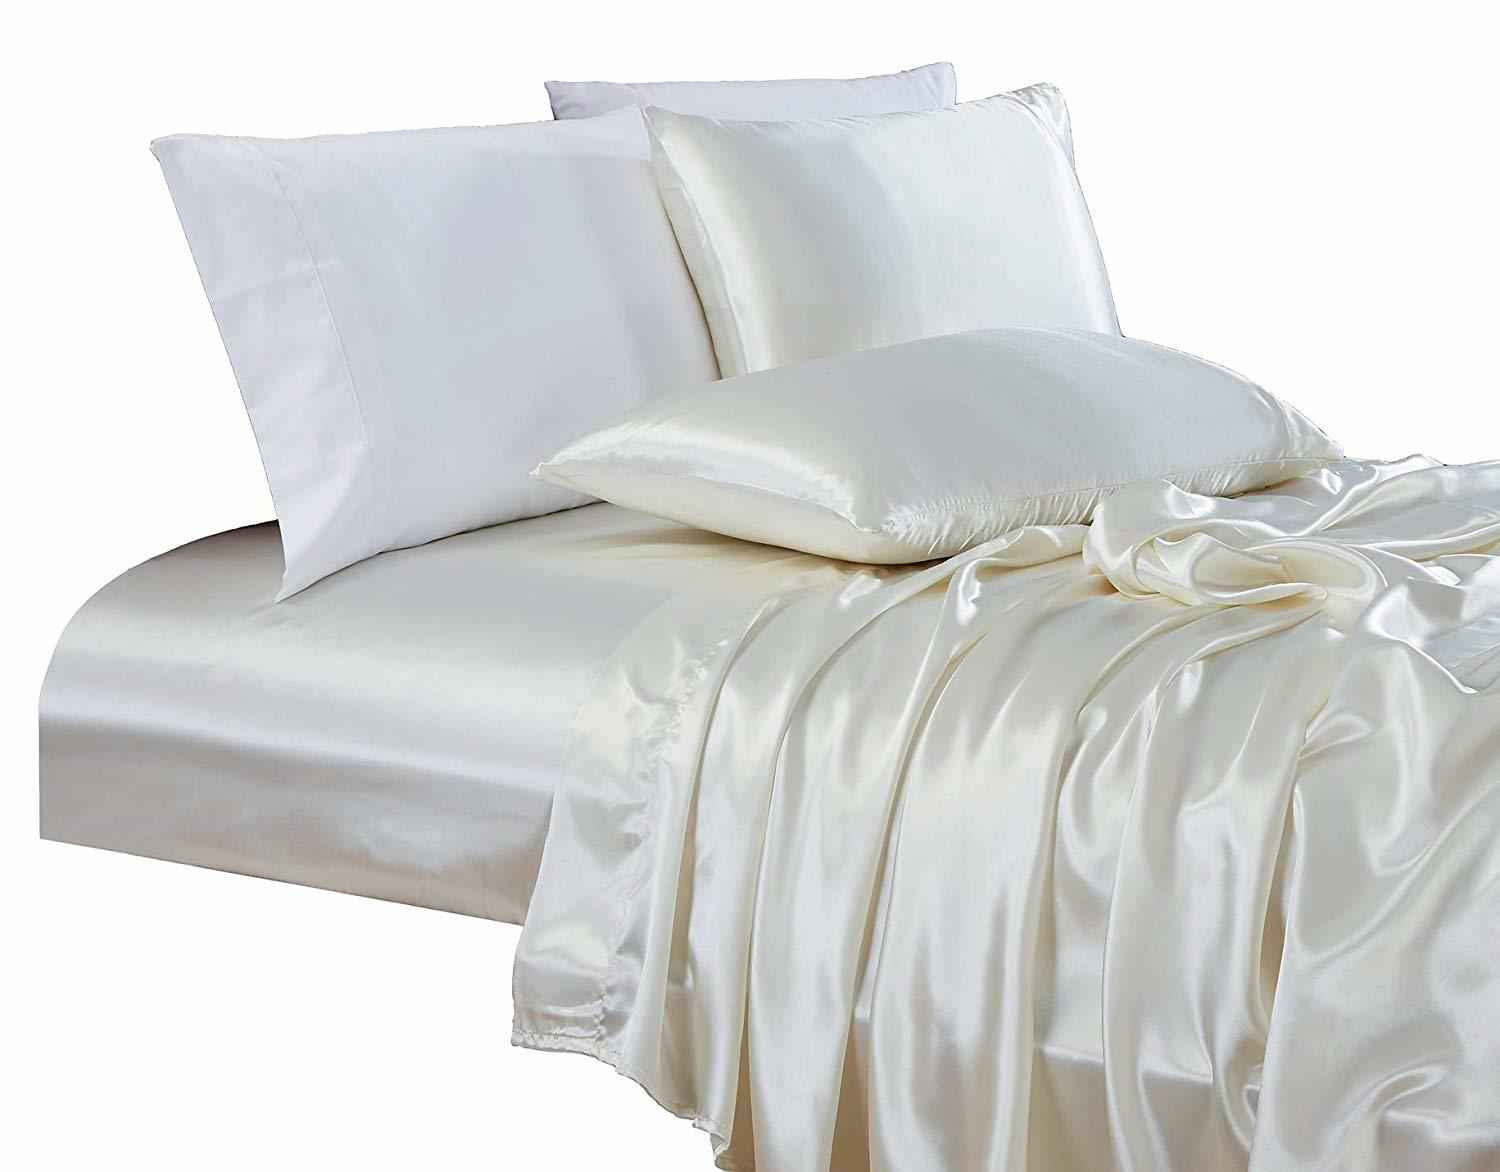 Best Satin Sheets In 2019 10 Satin Sheets To Look Out For